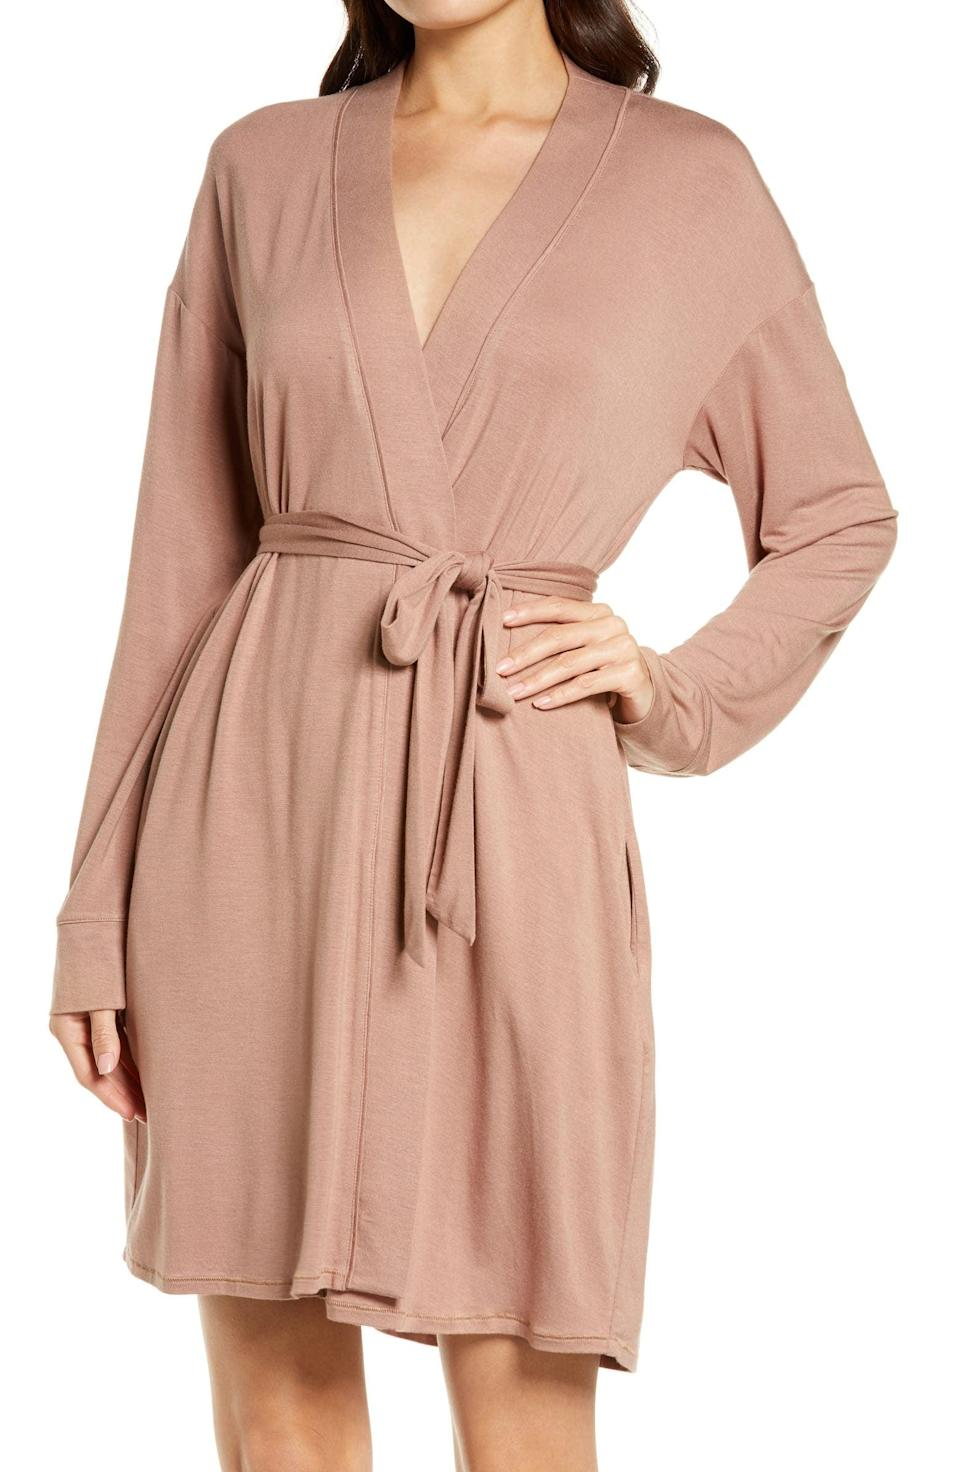 <p>The <span>Skims Sleep Knit Robe</span> ($78) is a luxurious, elegant find that will make them feel like they are royalty. It comes in a variety colors including taupe, grey, black, camel tan, talc white, and a blush rose.</p>